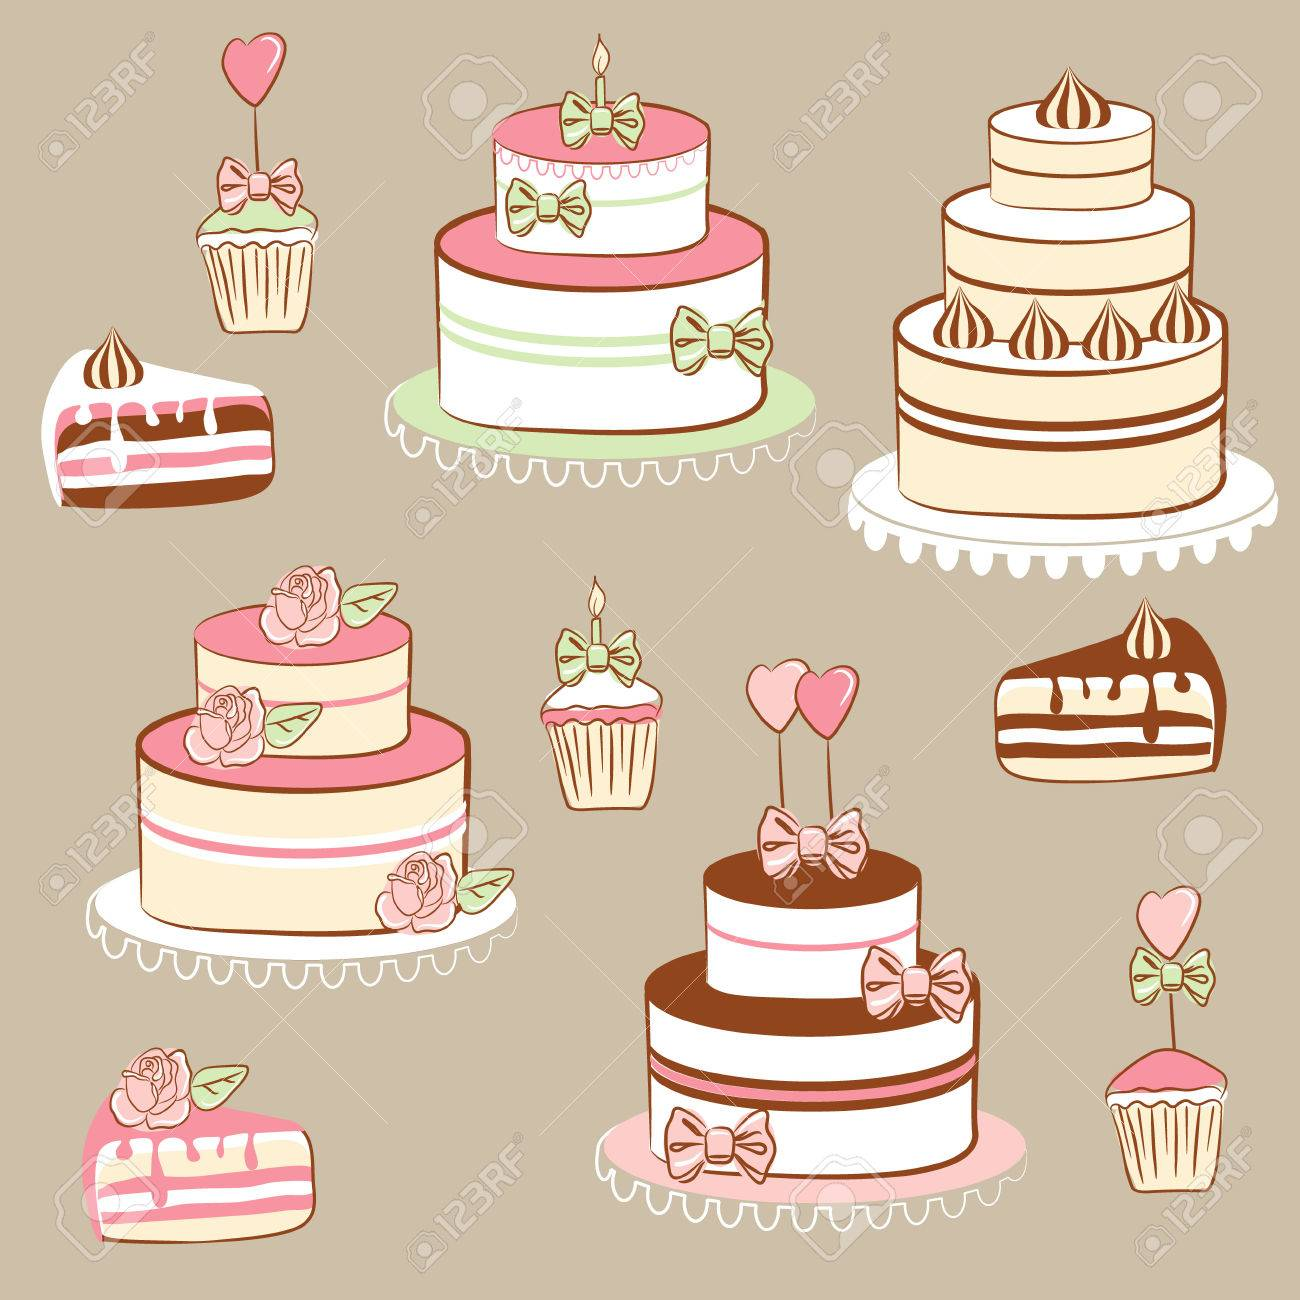 Pies and cakes Stock Vector - 7859112